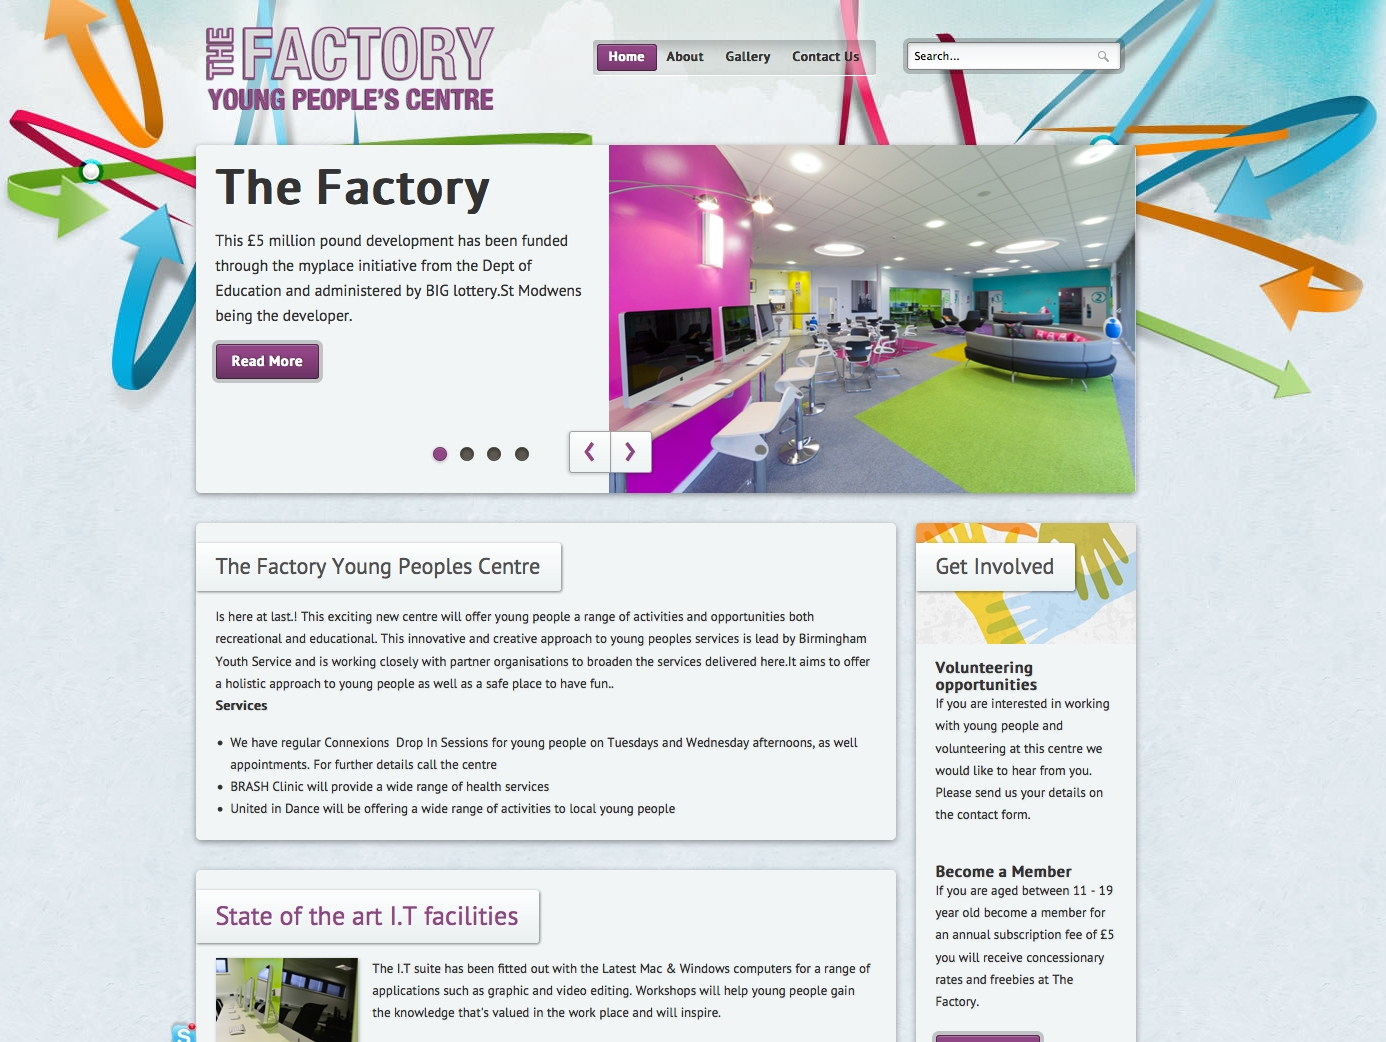 The Factory Young Peoples Centre